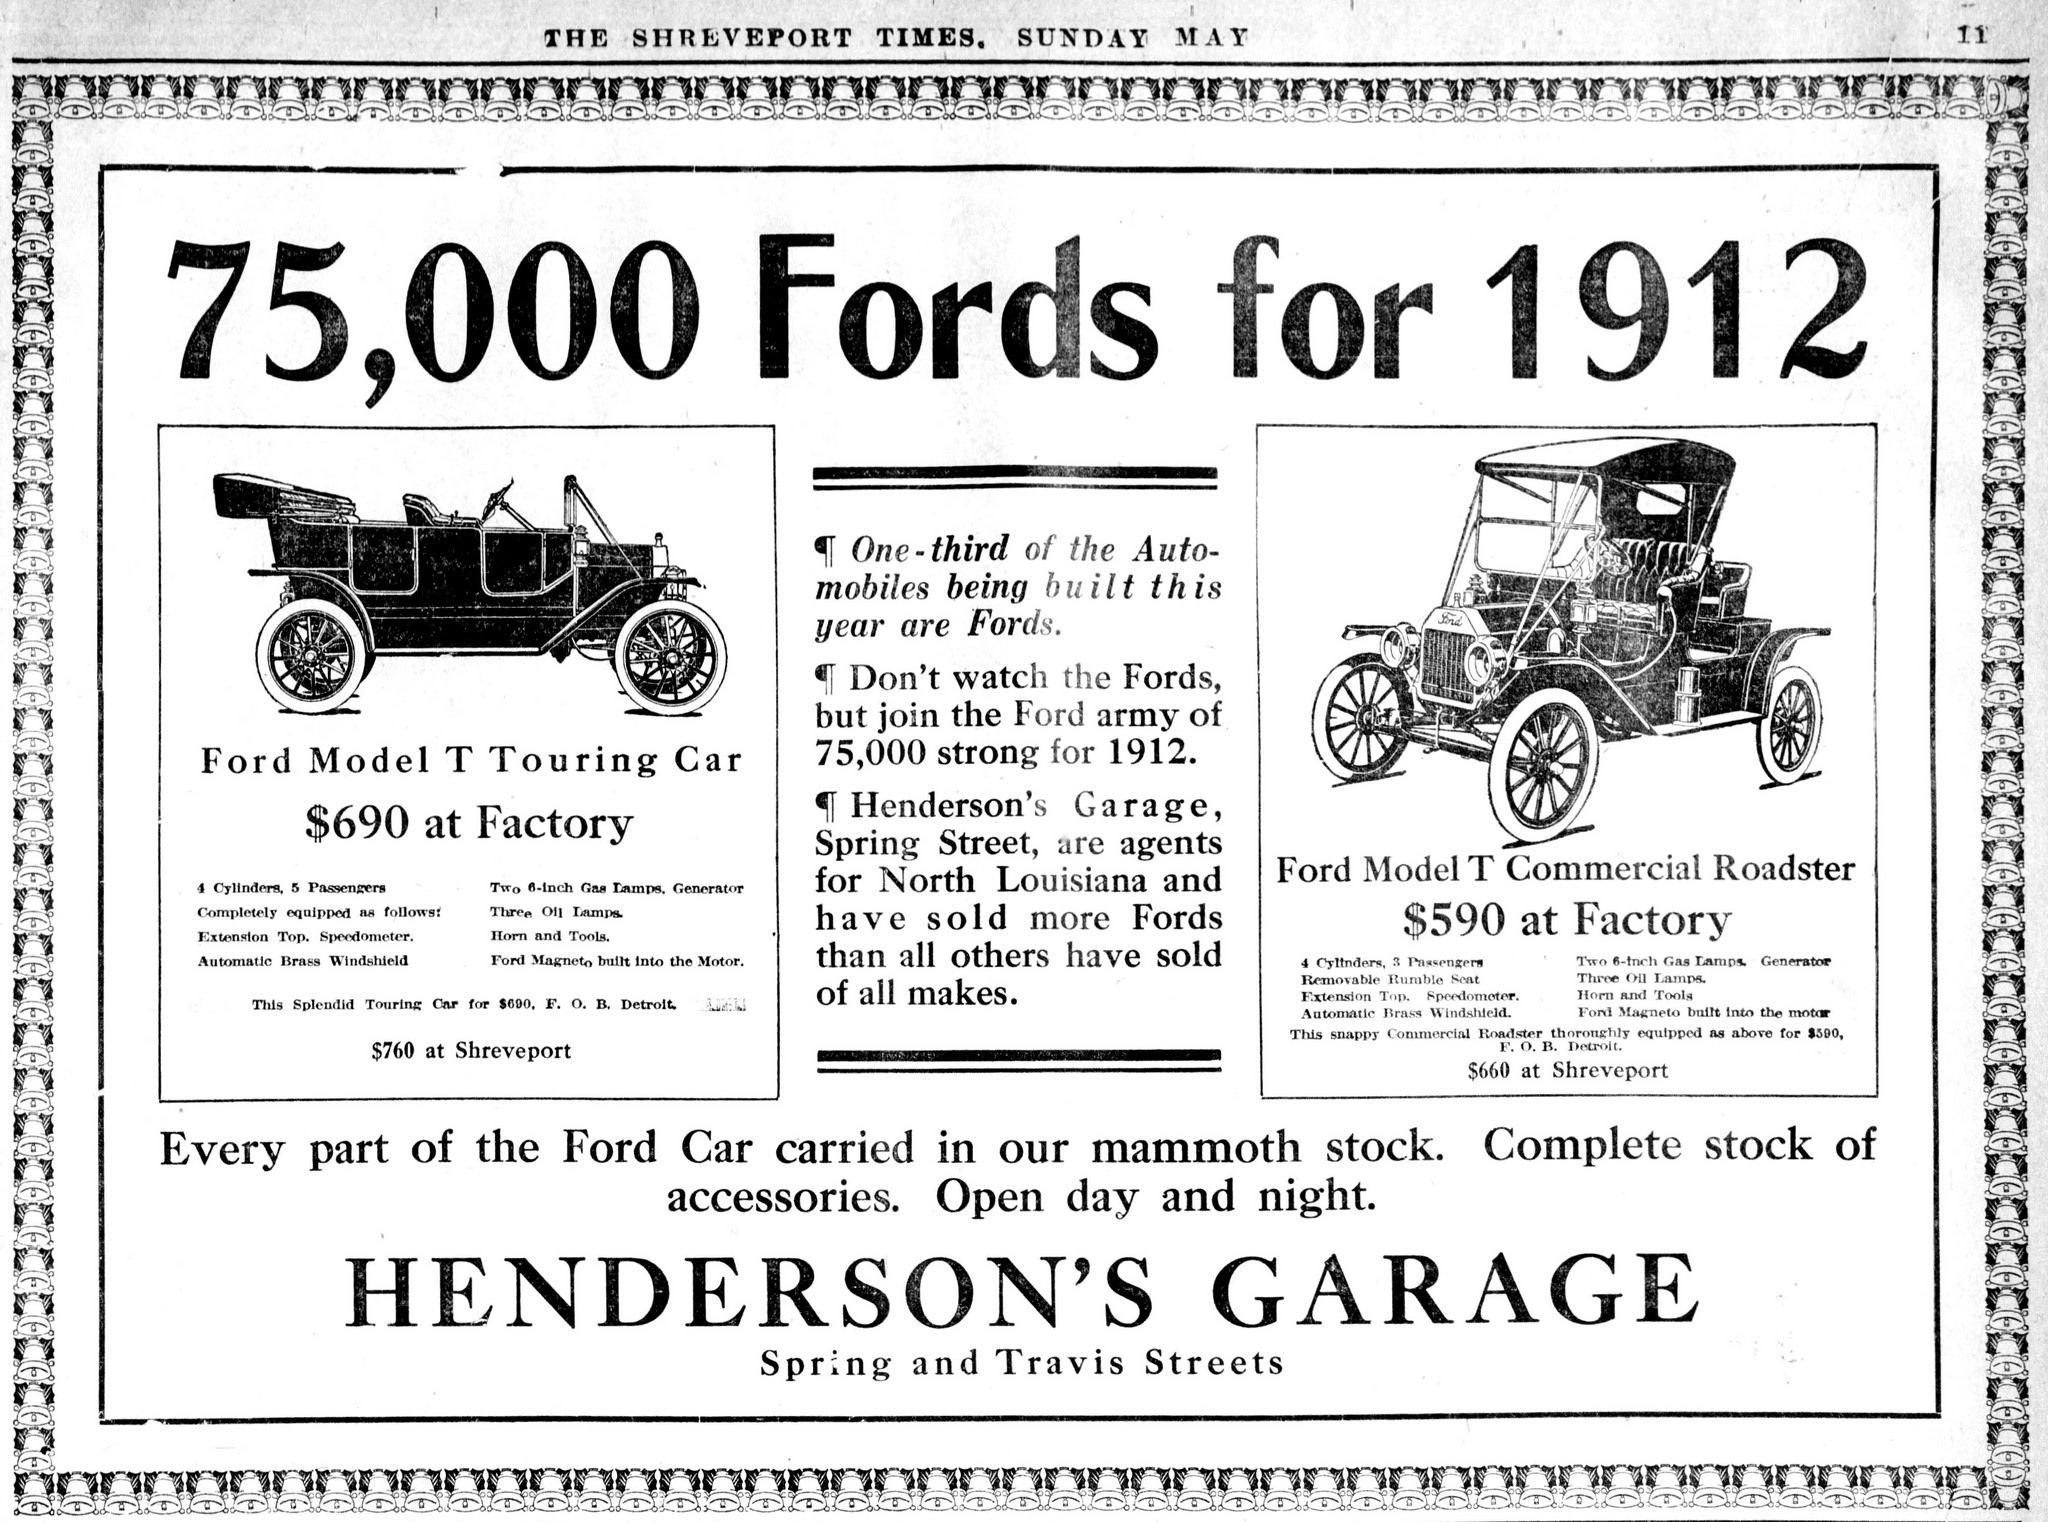 Vintage Advertising For The 1912 Ford Model T Automobile In The